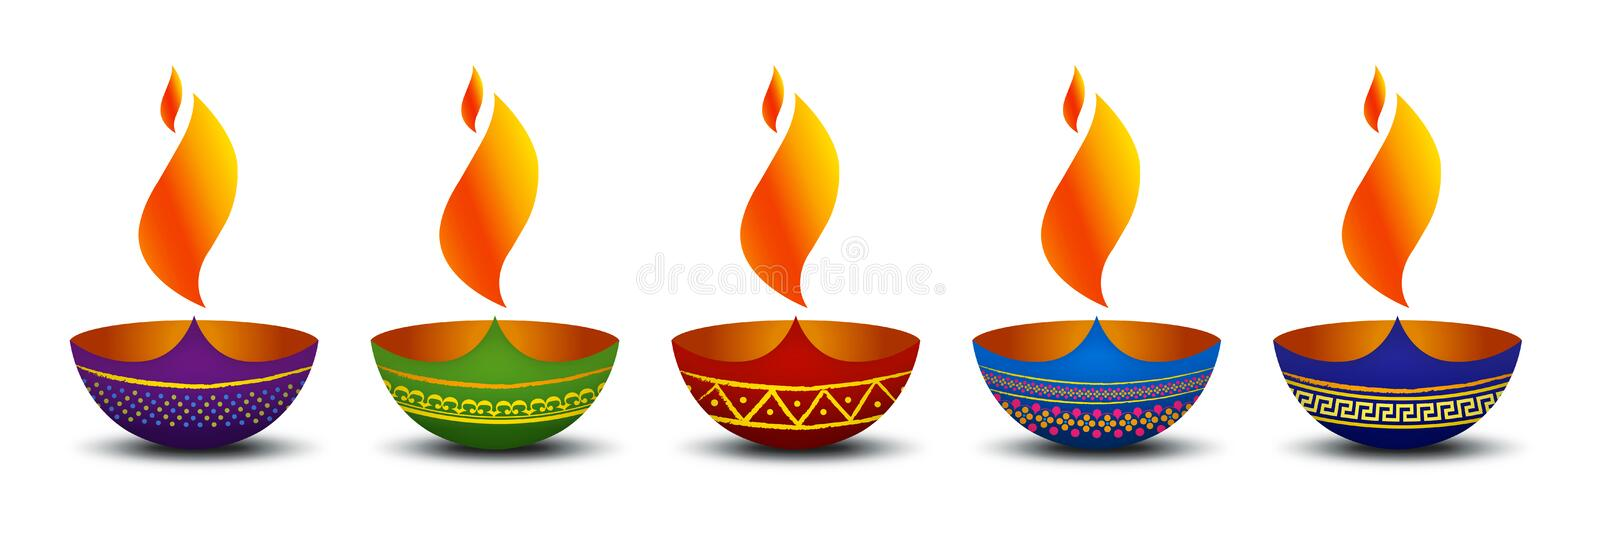 Diya. Is the symbol of prosperity, peace and happiness in Hinduism. It is a symbol of Festivals especially Diwali